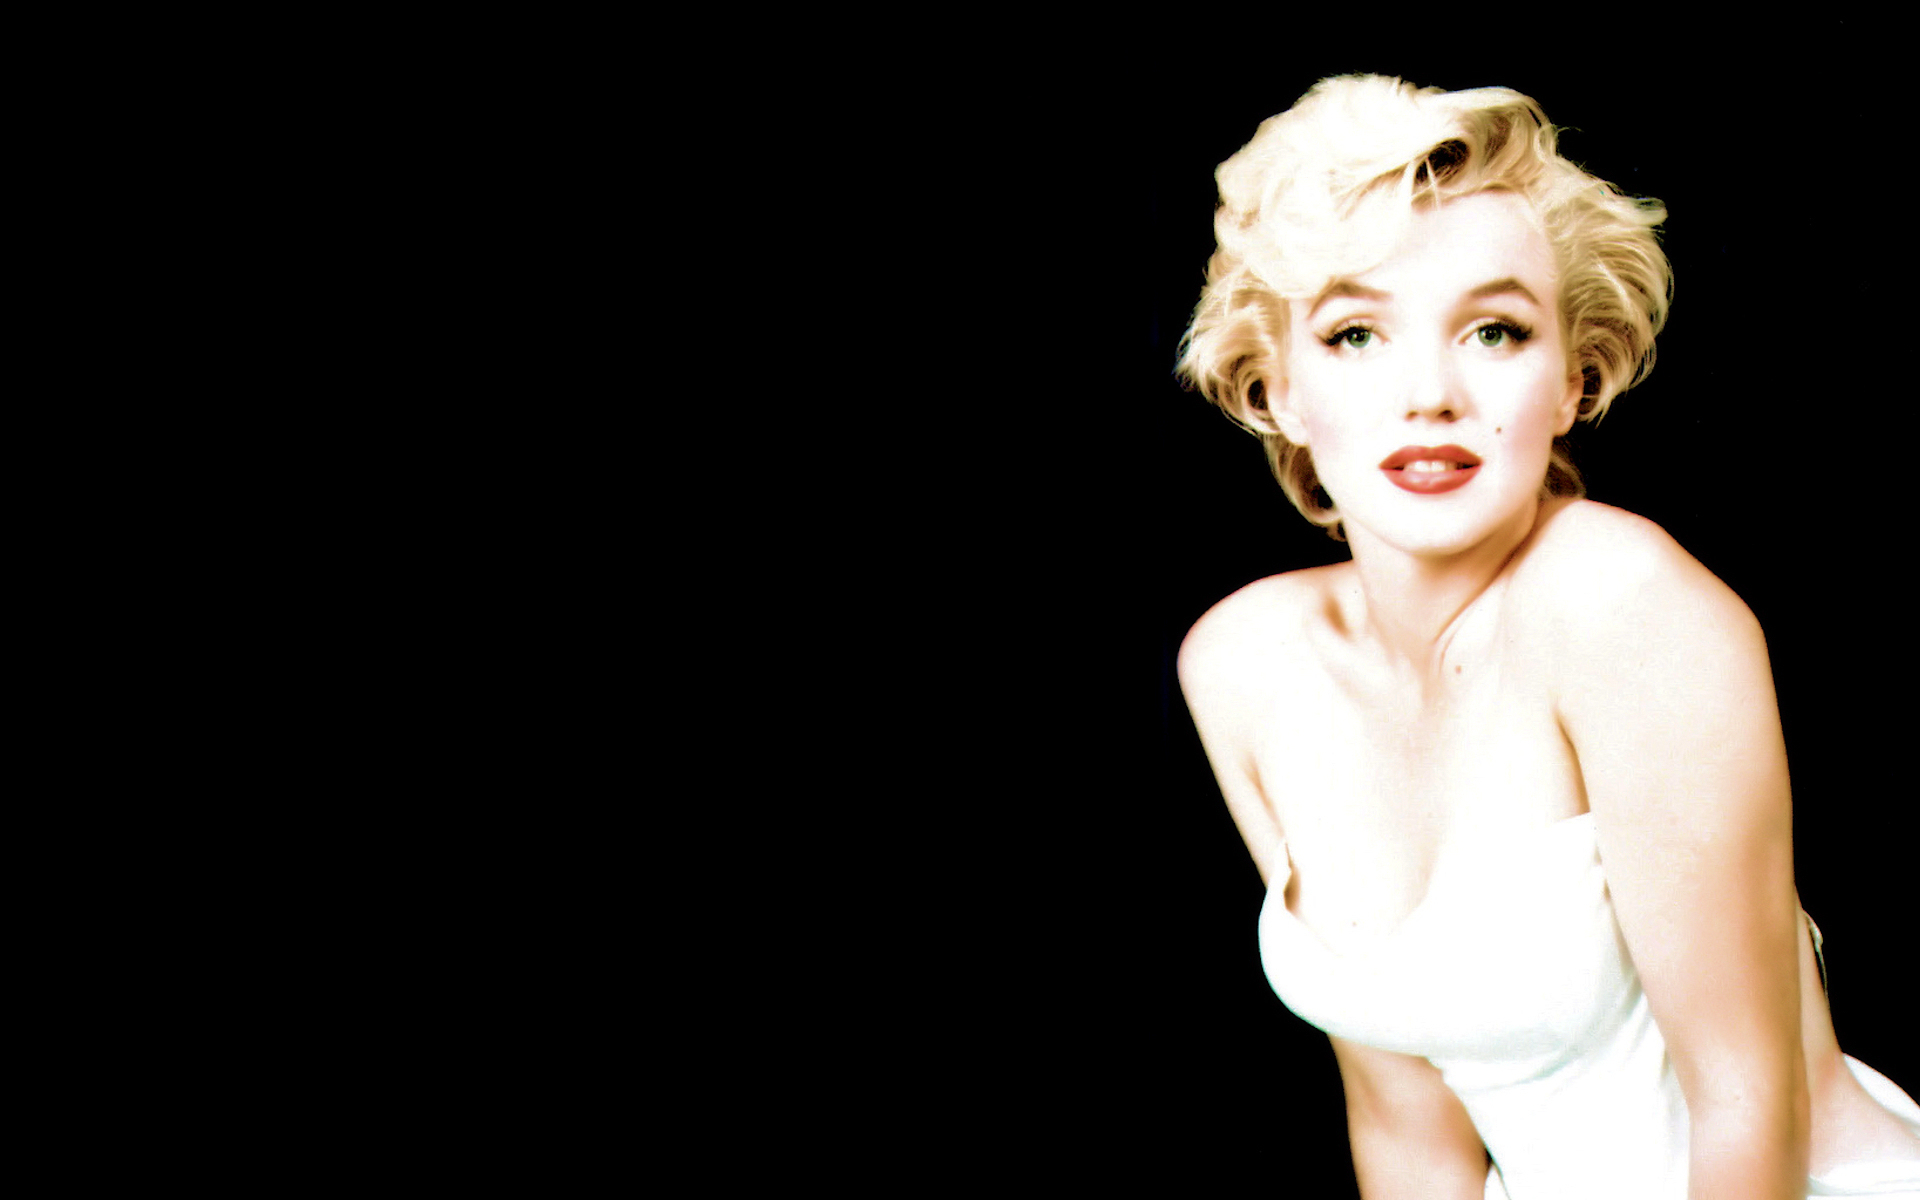 48 Marilyn Monroe Wallpaper For Walls On Wallpapersafari